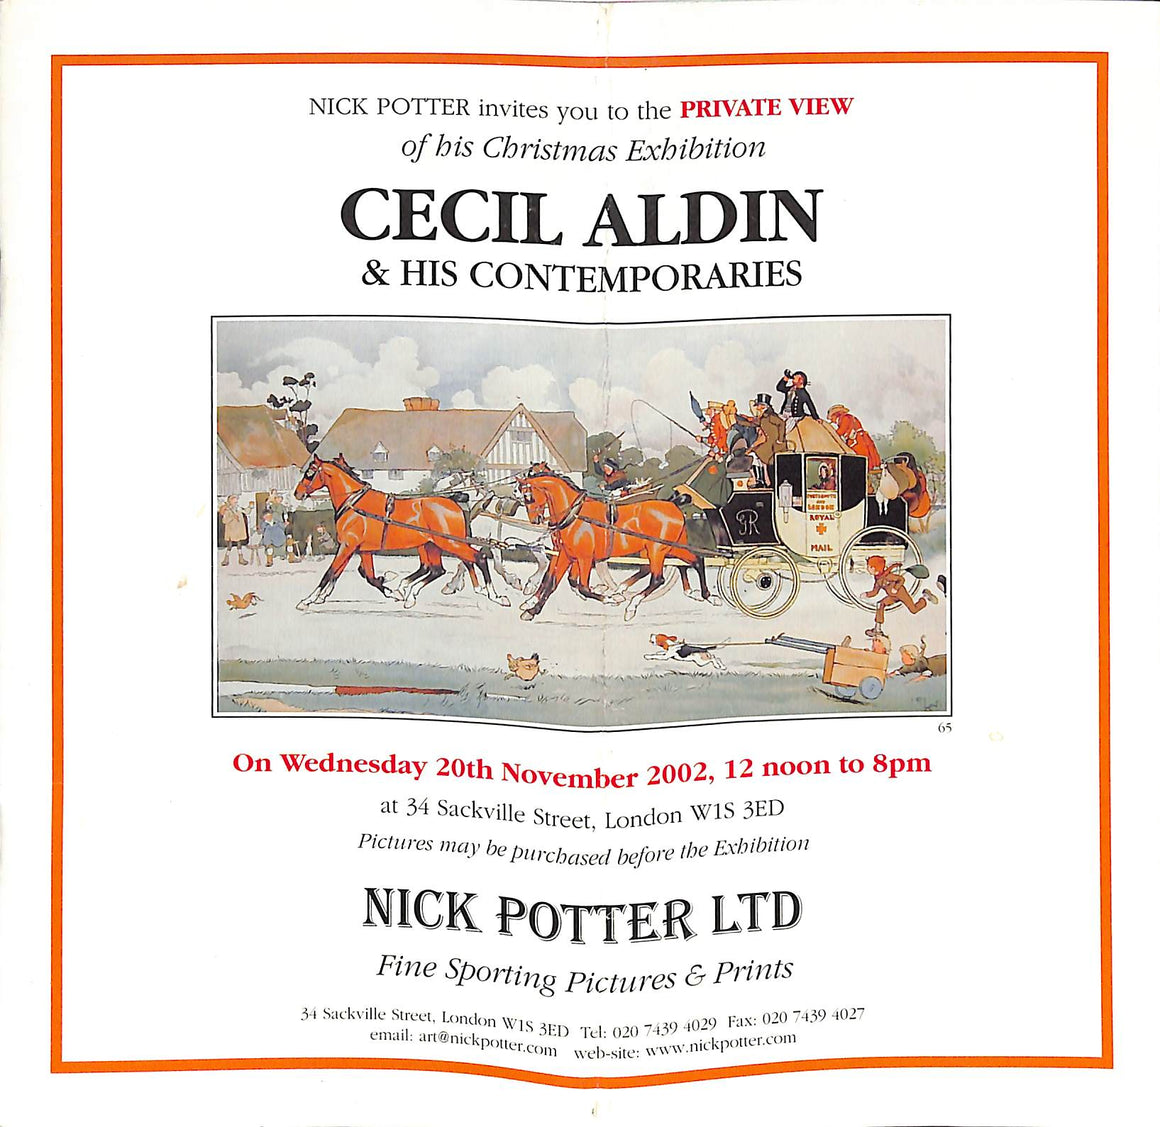 Nick Potter Christmas Exhibition: Cecil Aldin & His Contemporaries - 20th November 2002 (Sold!)